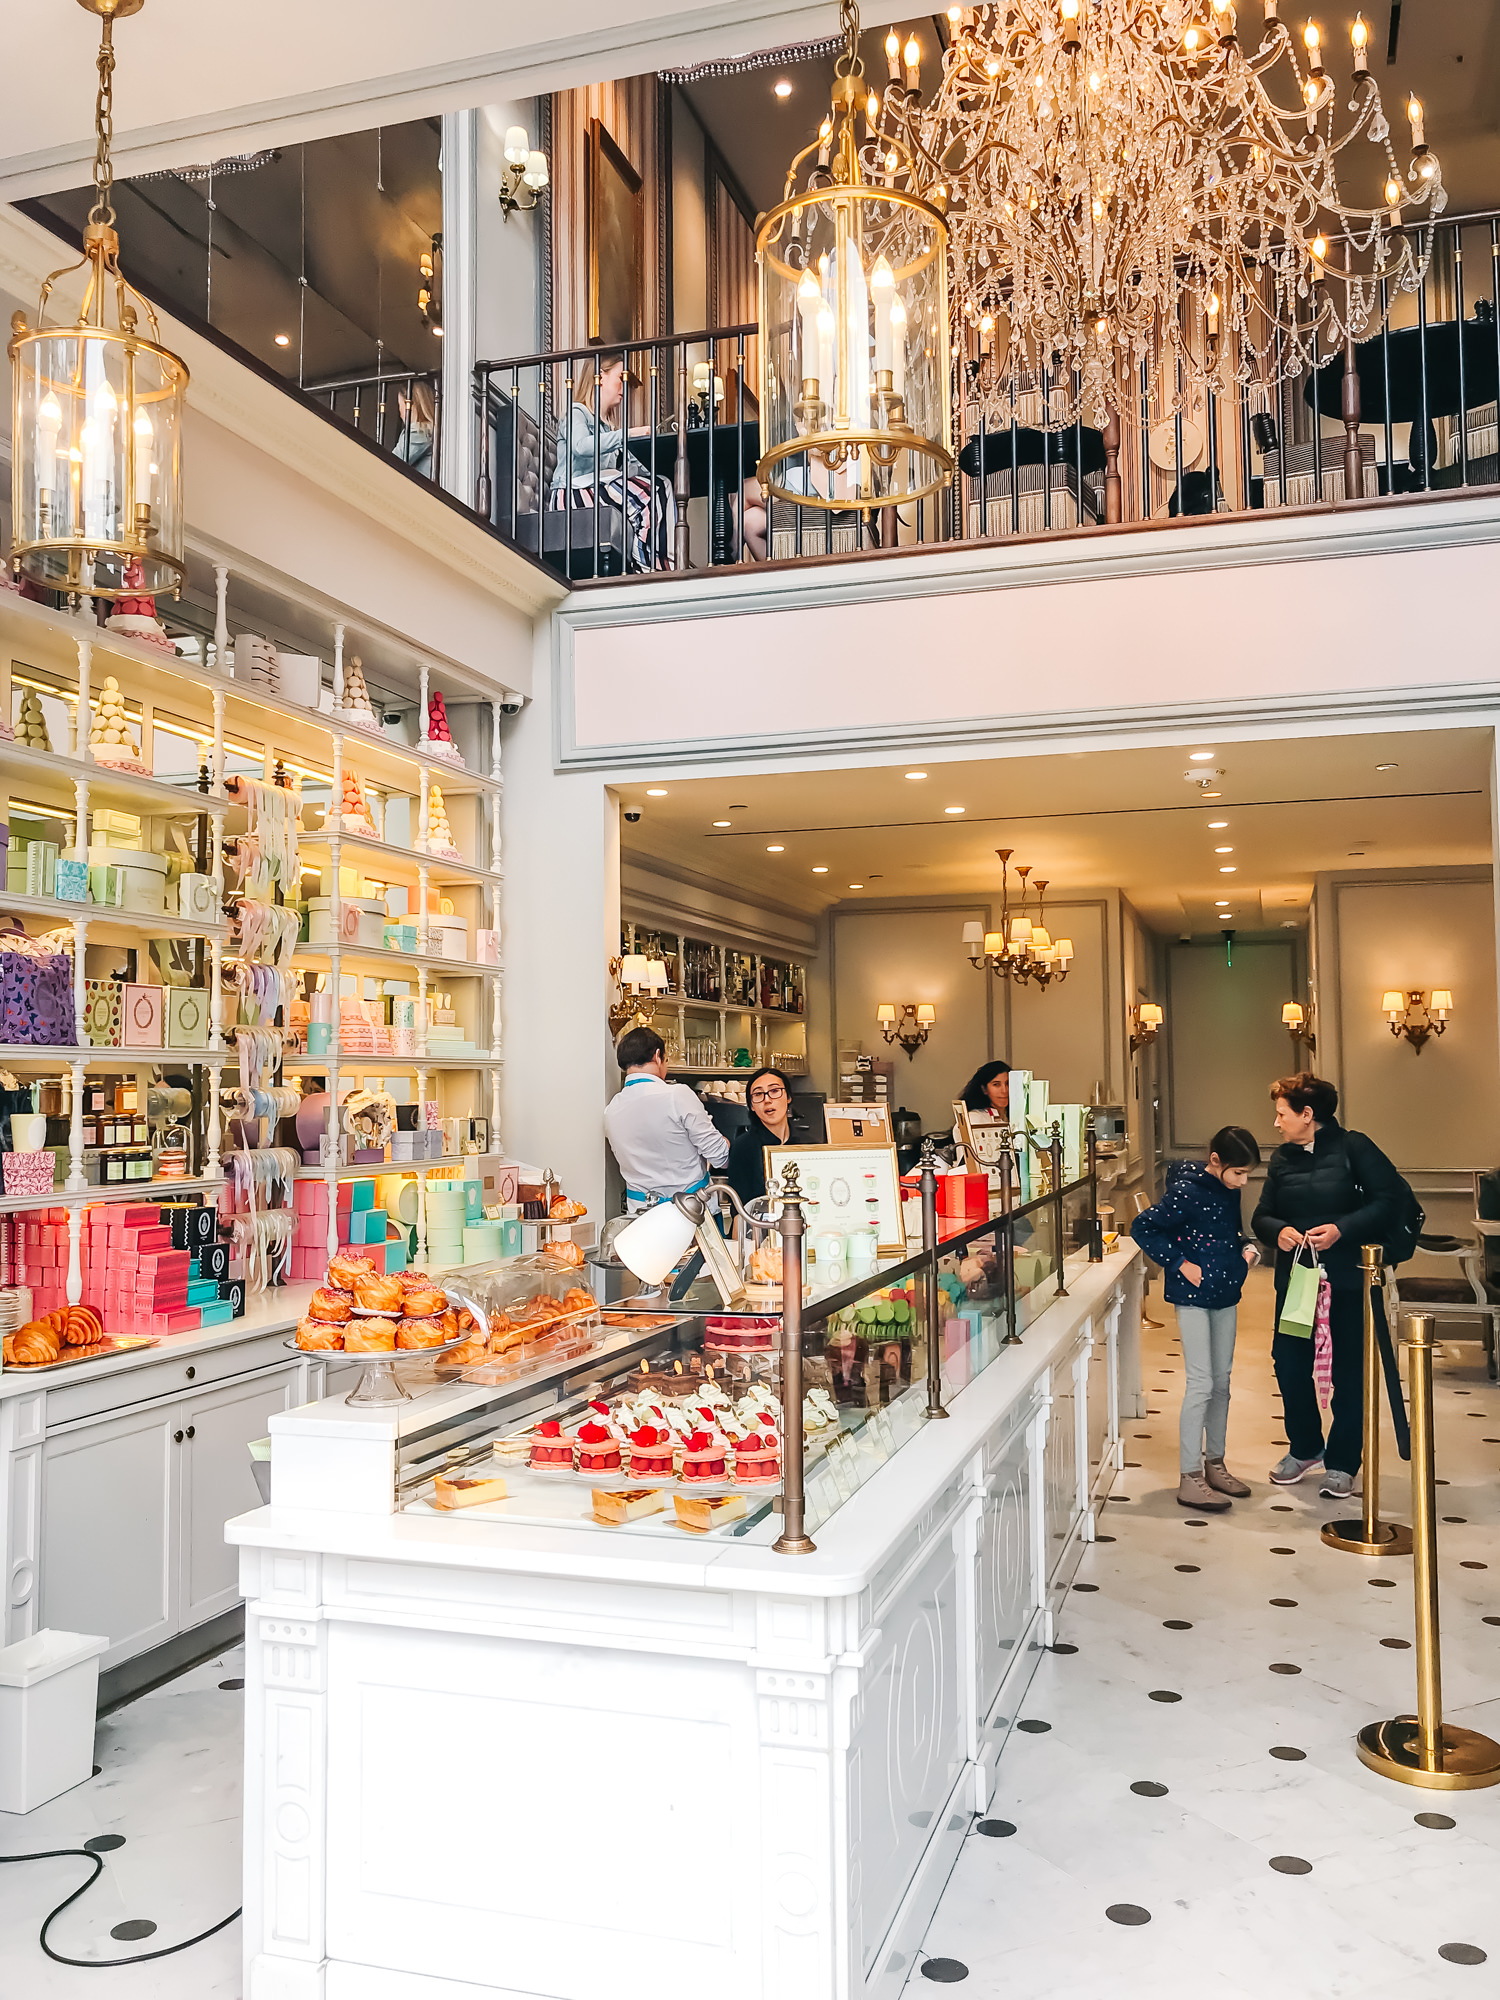 inside the adorable Ladurée